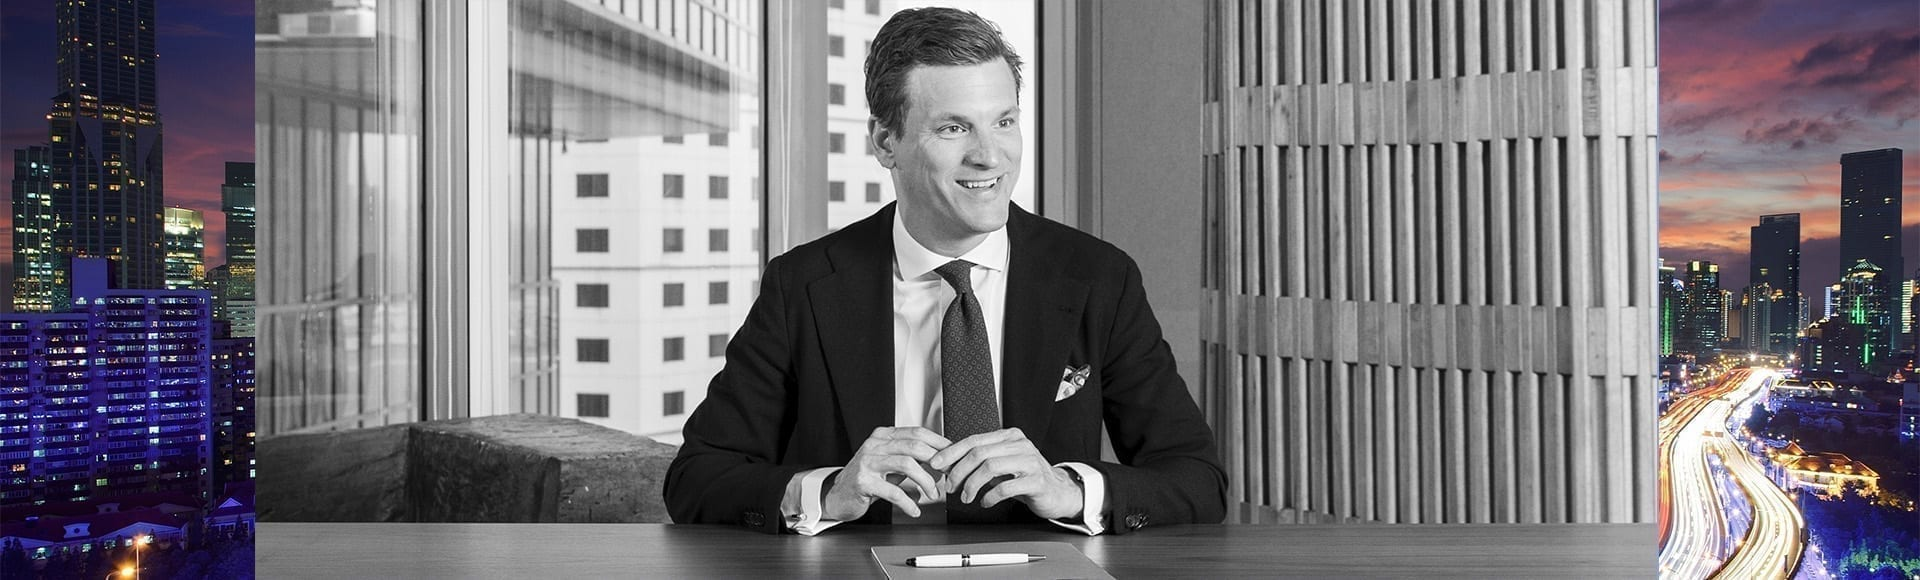 Jan Willem Möller - Hong Kong and Dutch Lawyer, Tanner De Witt Solicitors